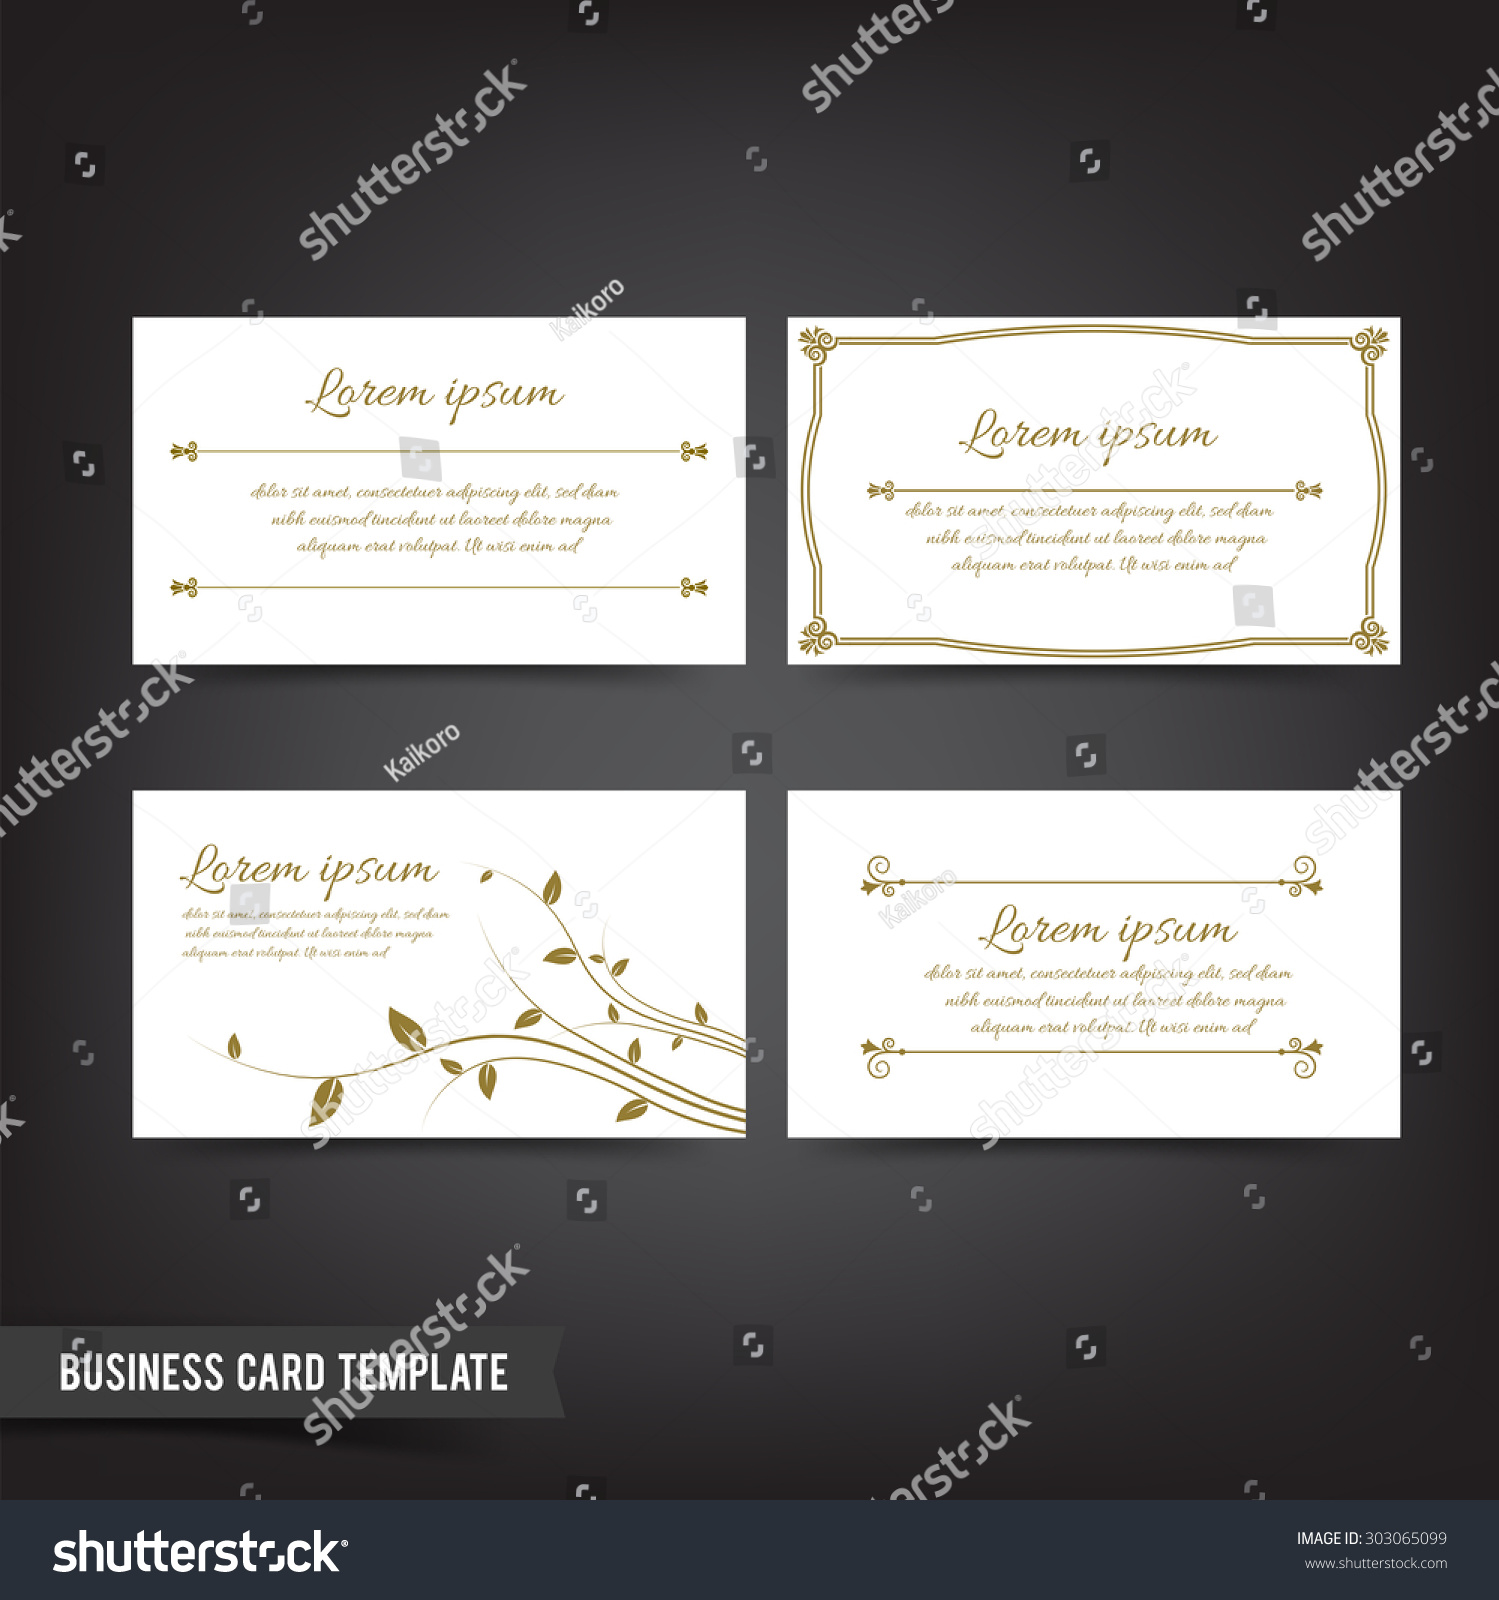 Clear Minimal Design Business Card Template Stock Vector